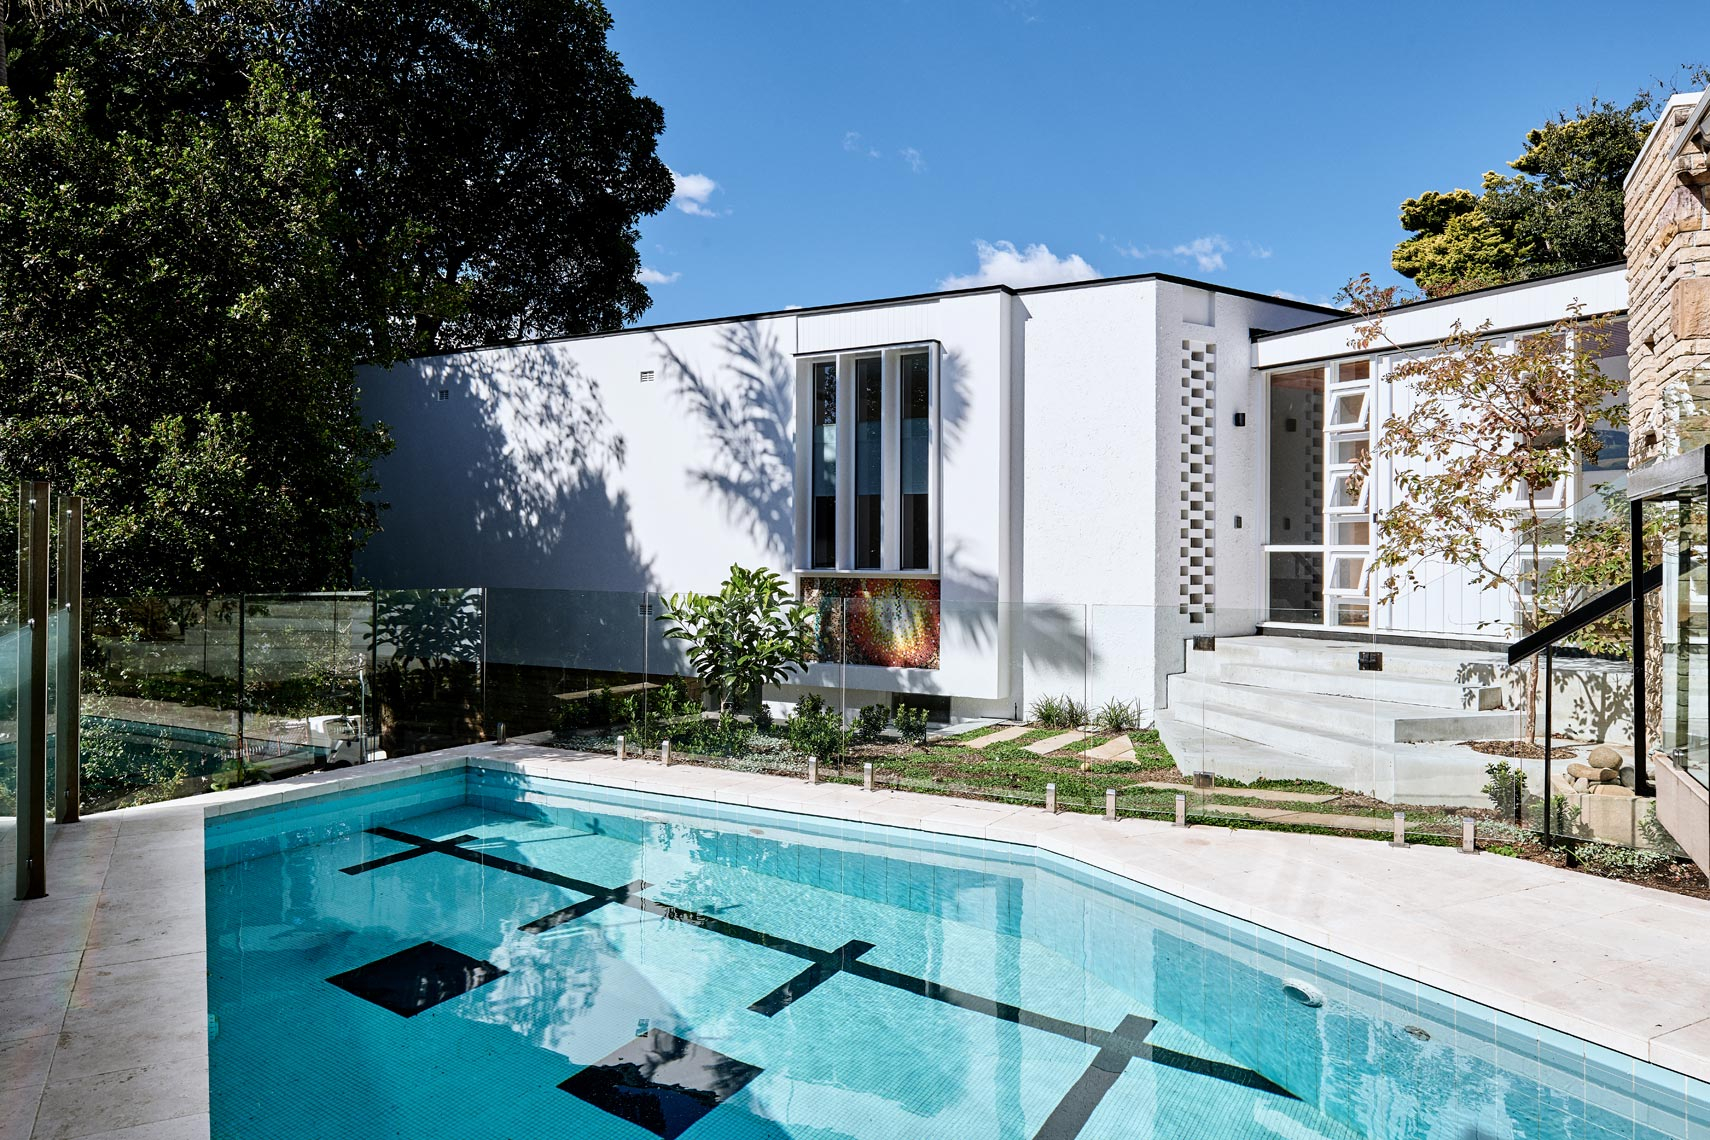 mitchfong_Vaucluse-house_-1-3